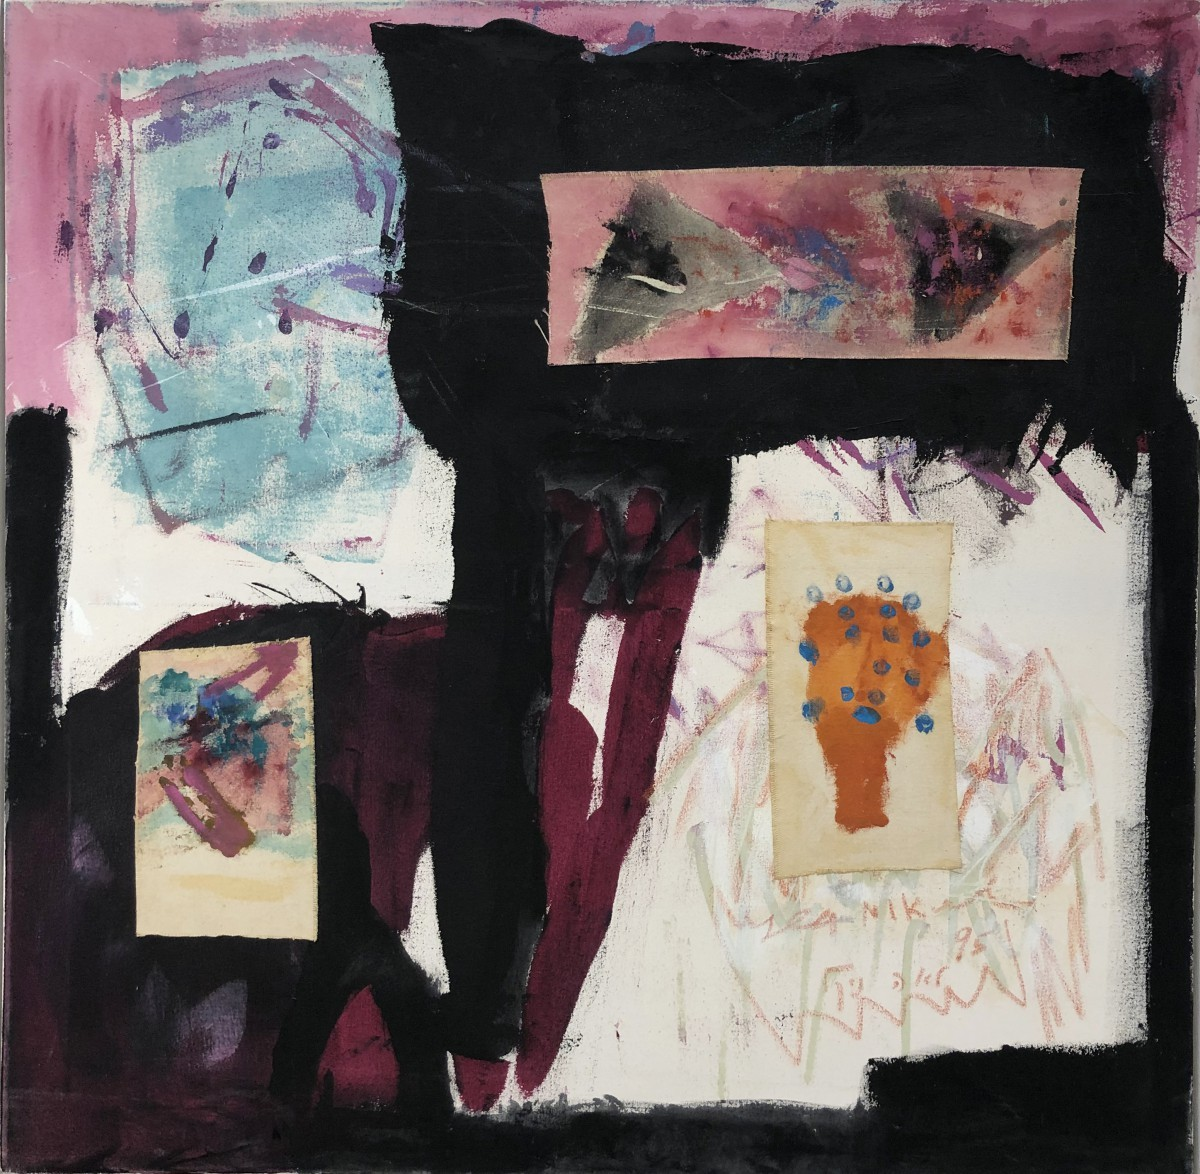 Lea Nikel, Untitled Acrylic and collage on canvas,1995,100x100 cm, $16,000